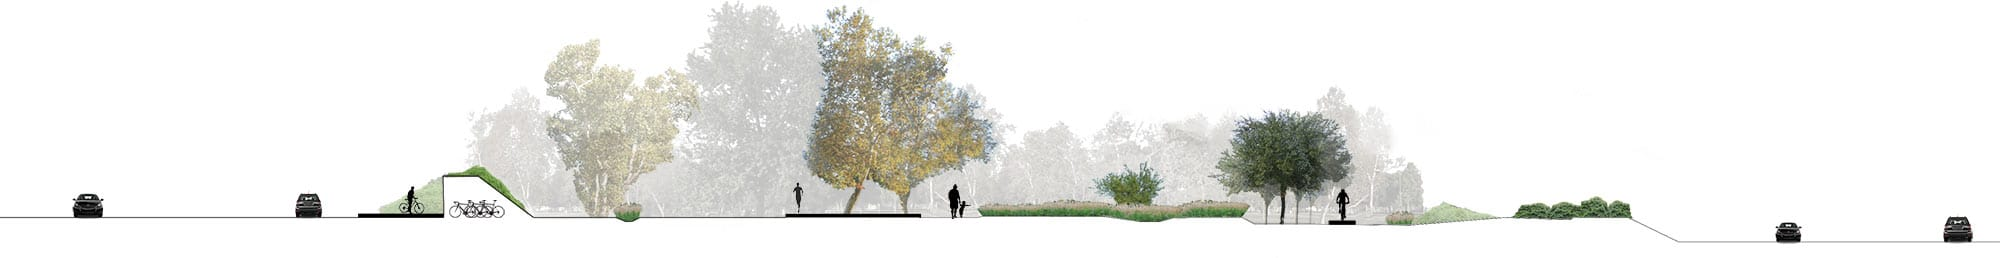 architectural rendering of a bike path system